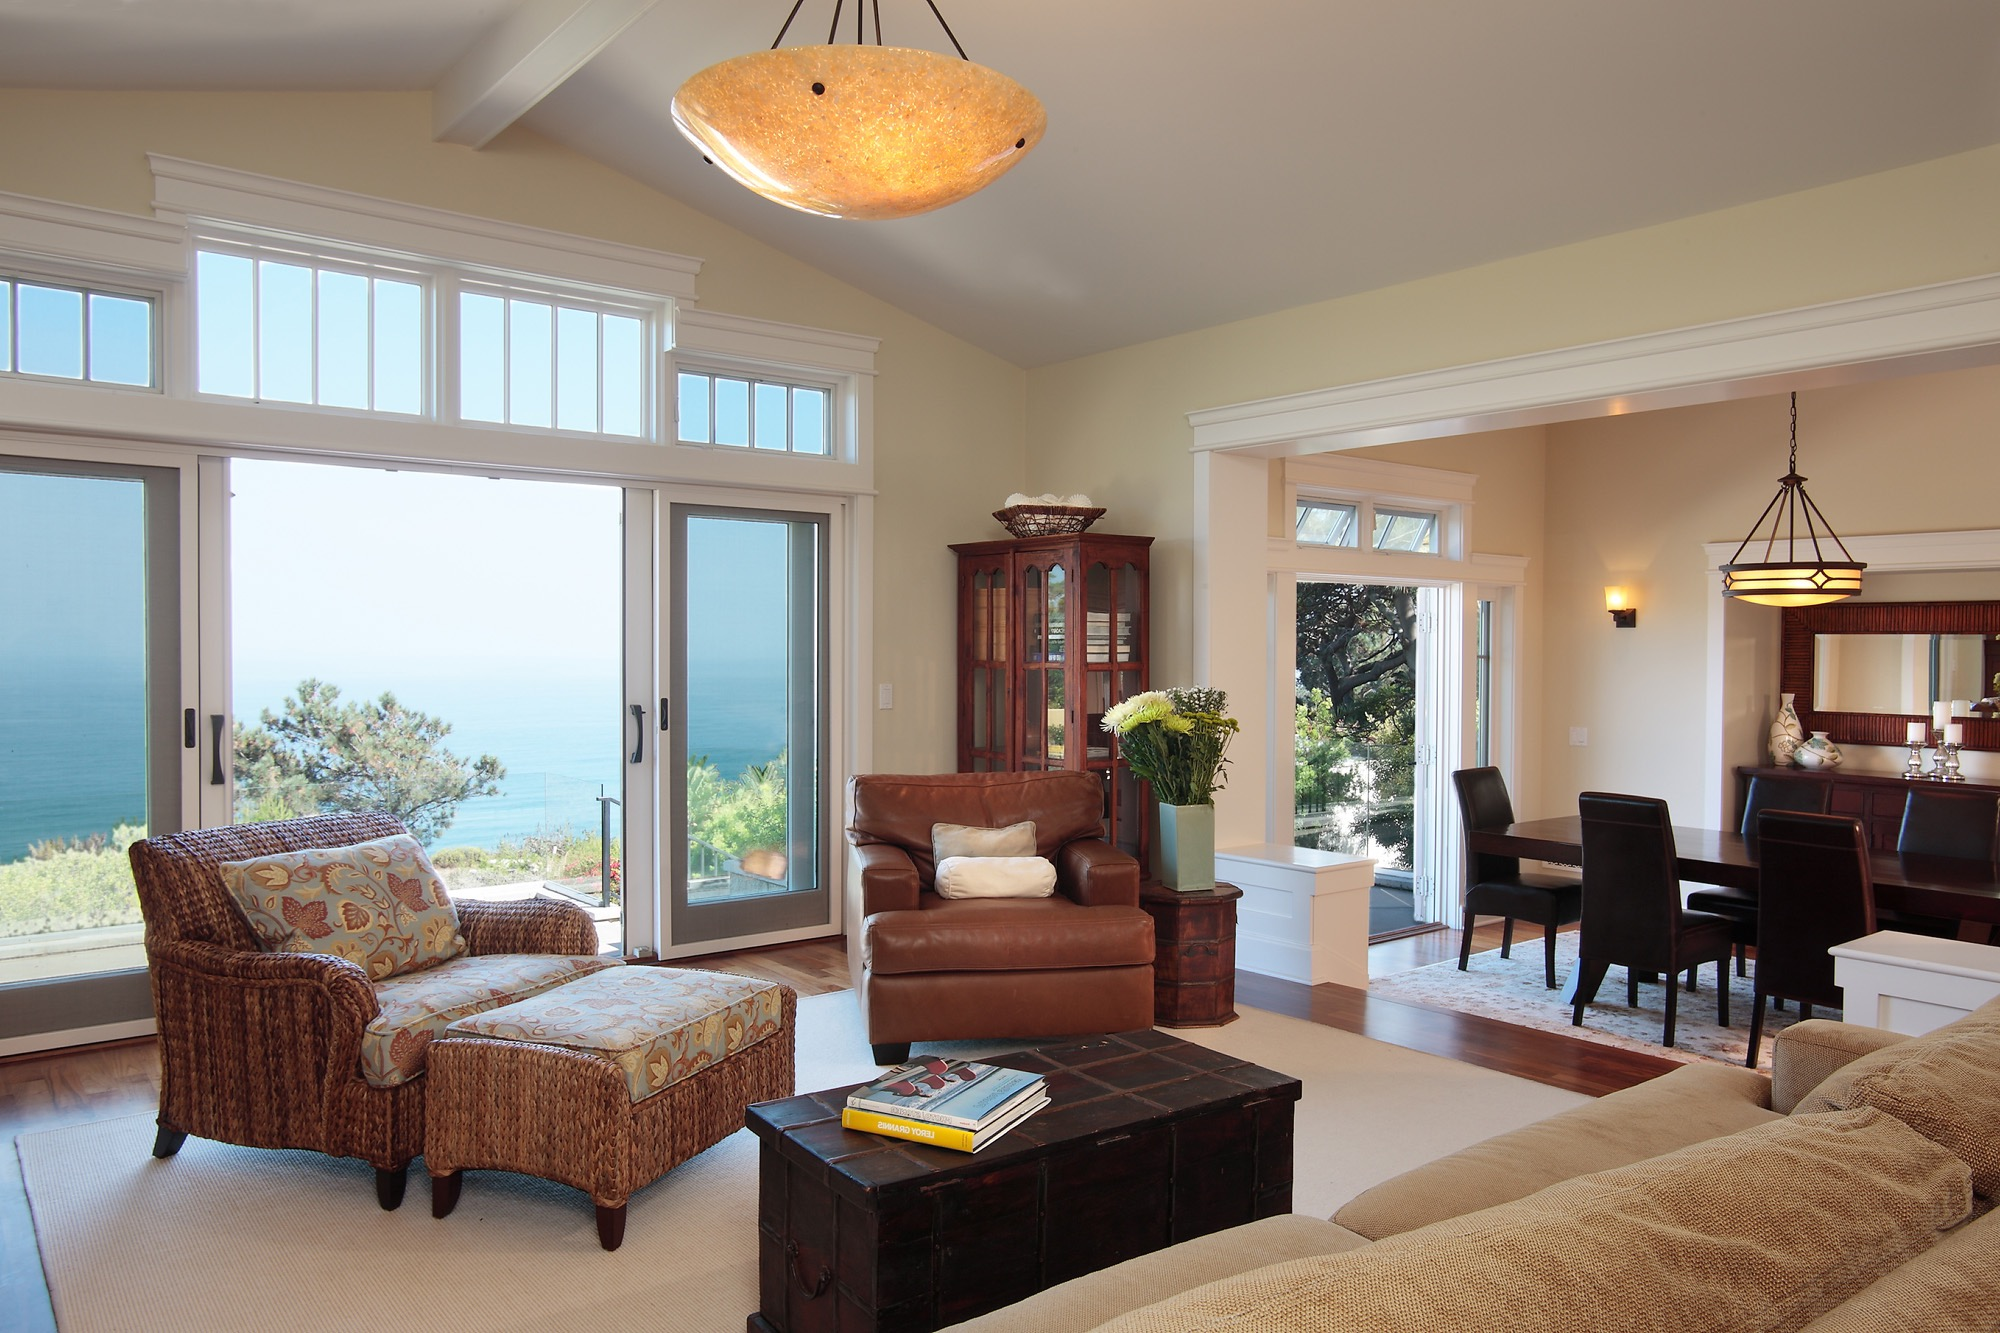 Traditional Wooden Sliding Glass Door For Modern Open Space Living Room (View 9 of 13)